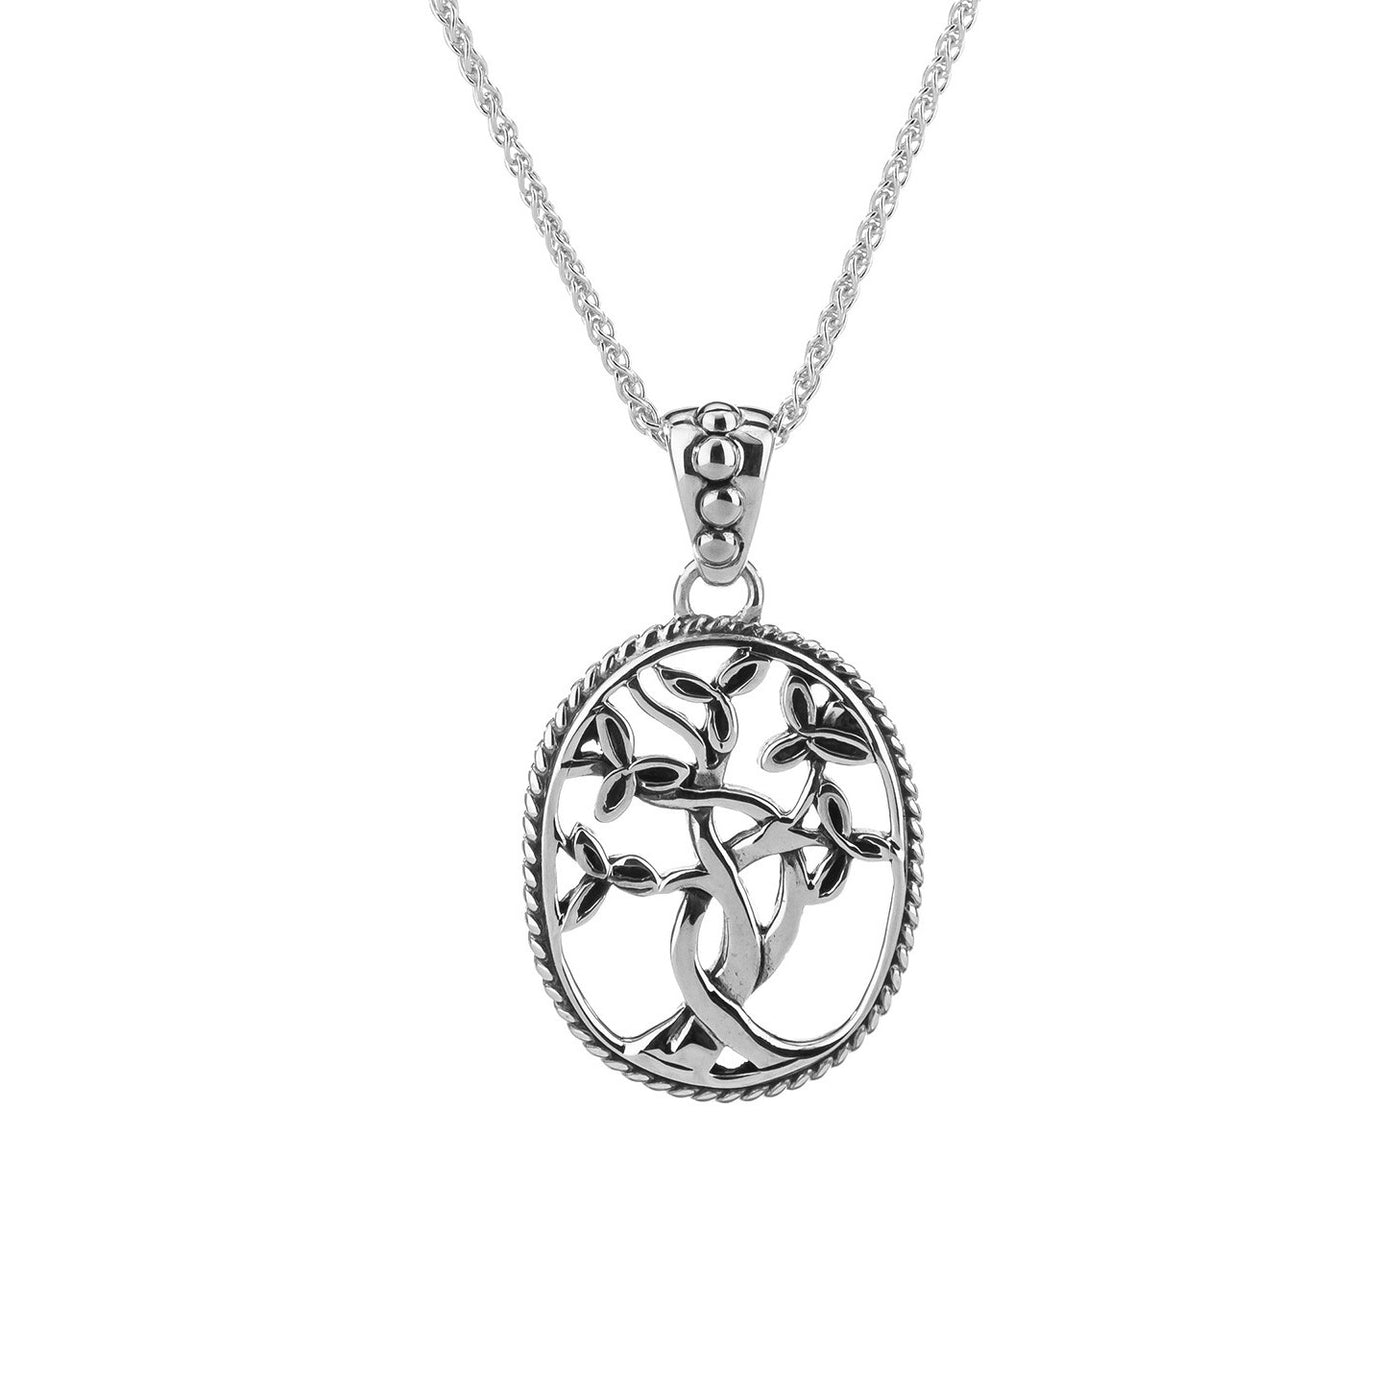 KJ PPS9010 SMALL TREE OF LIFE NECKLACE